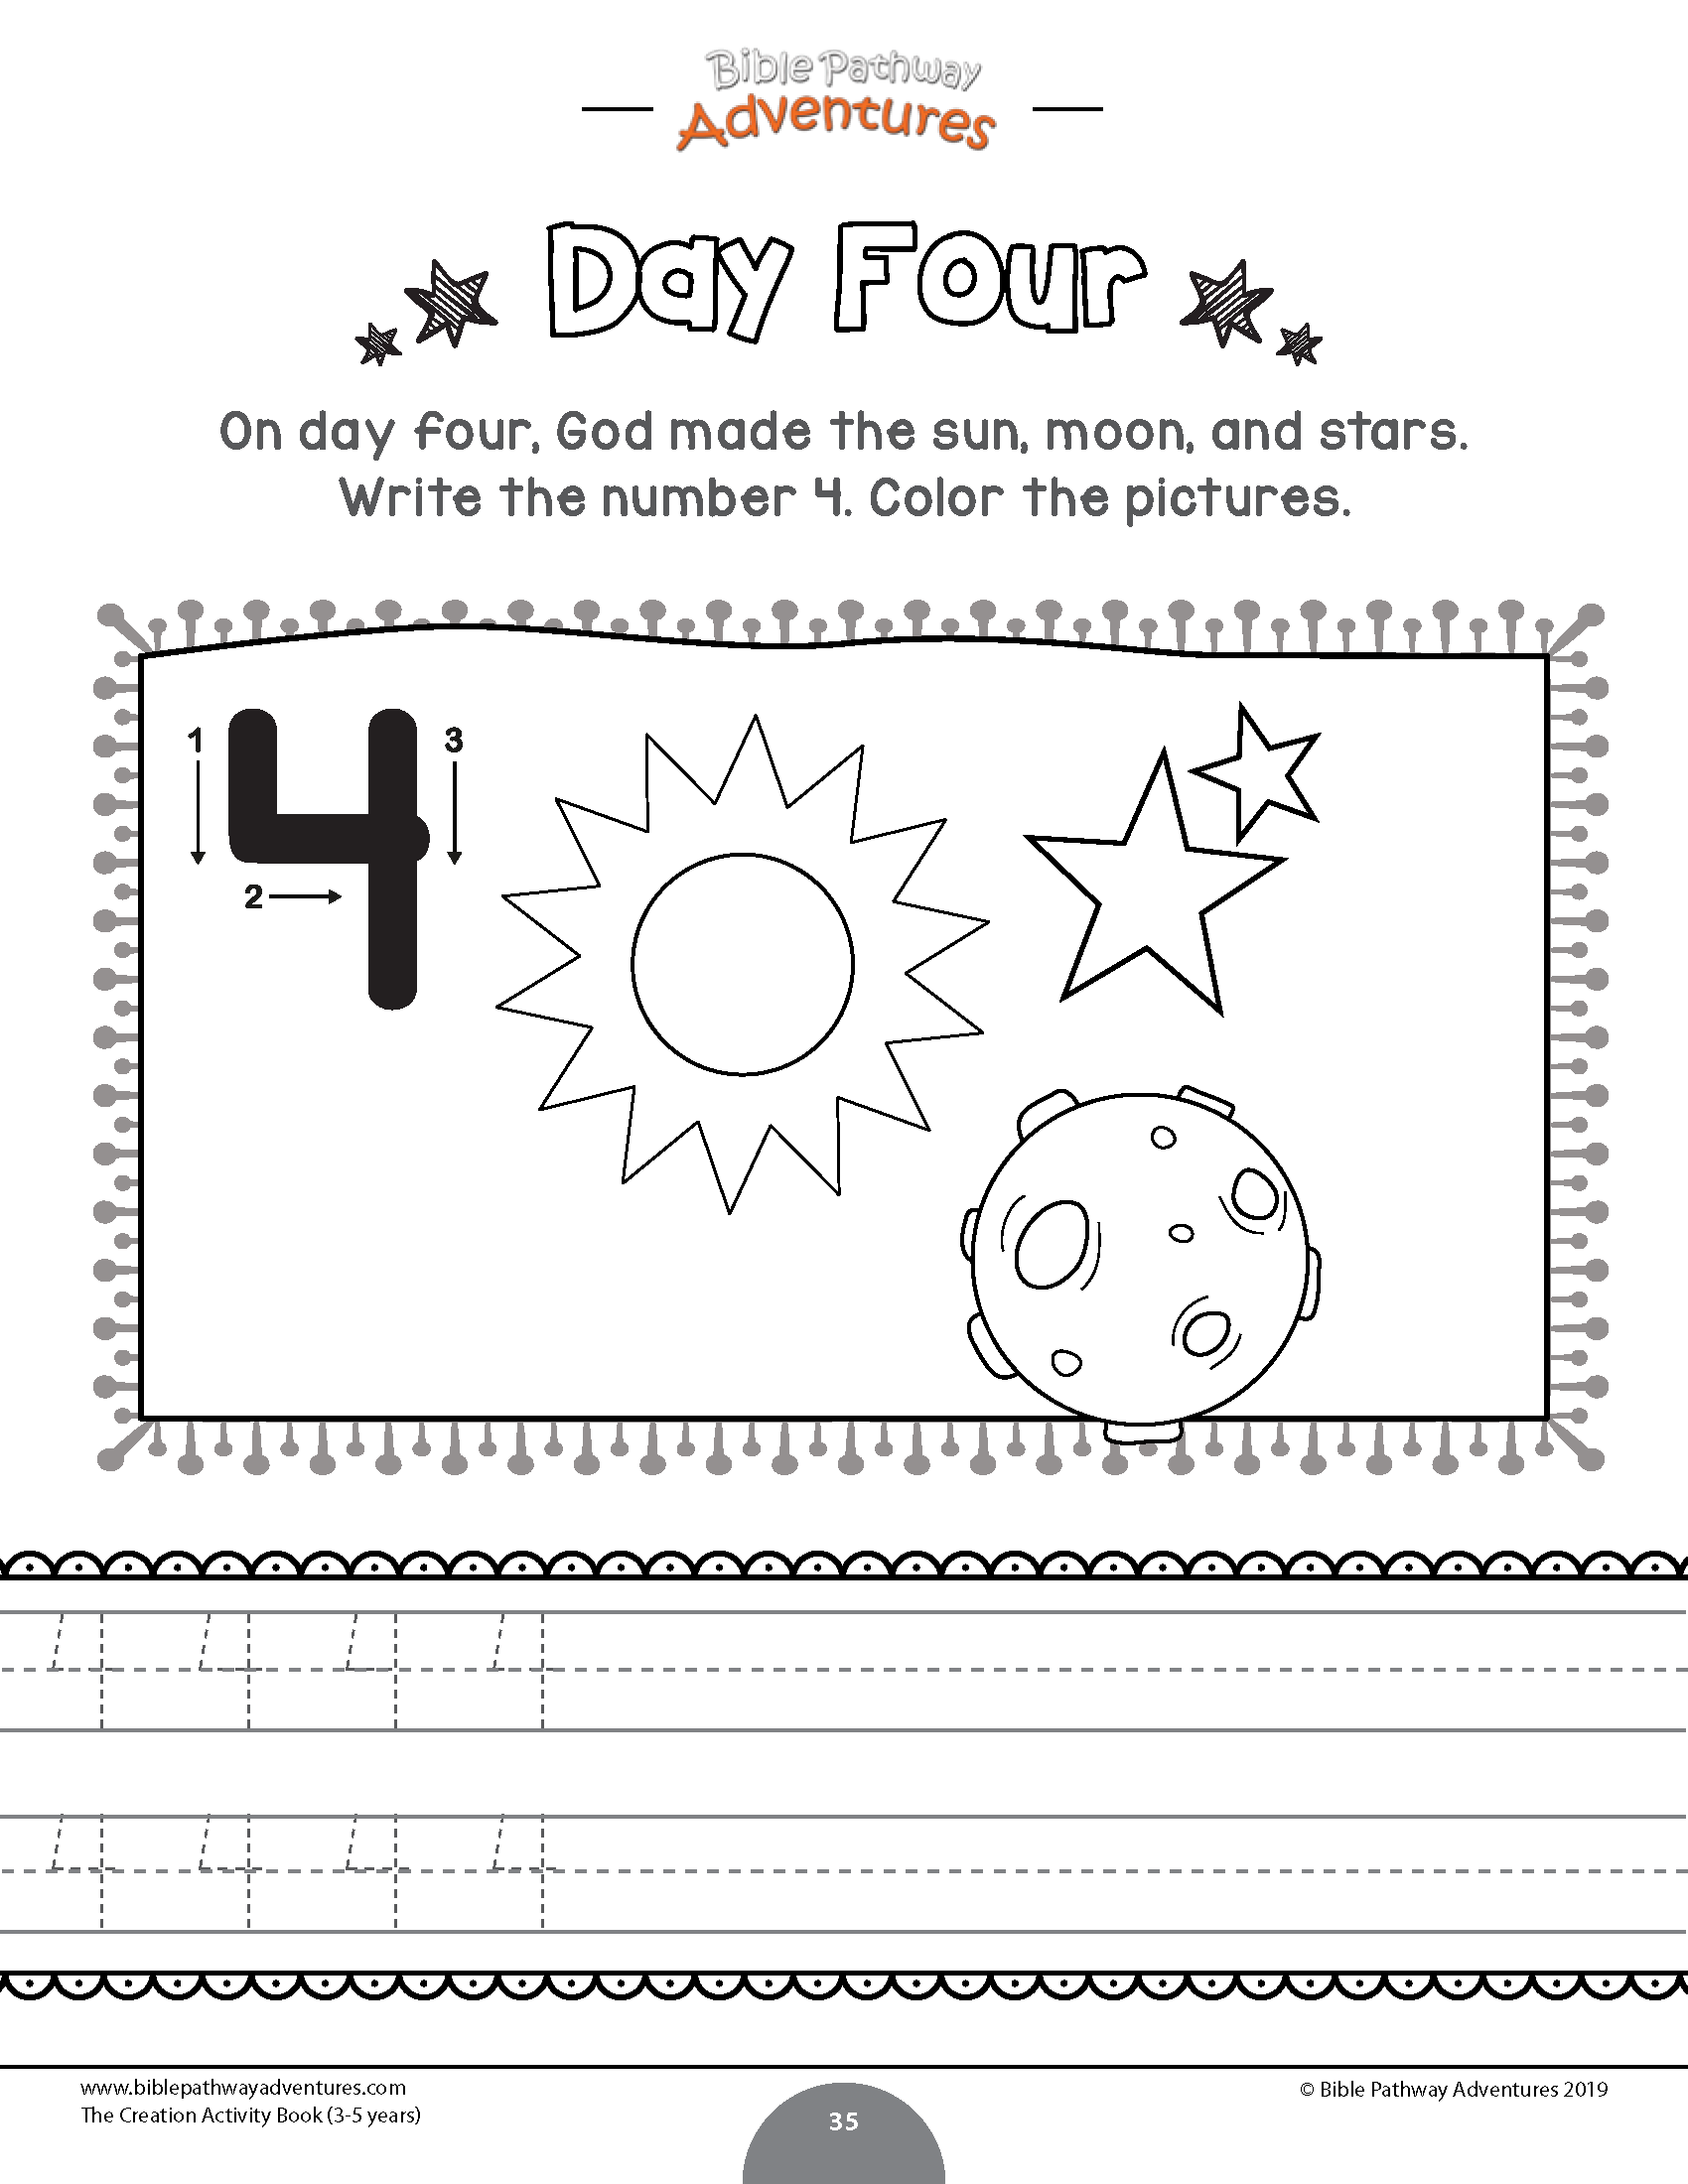 Day Four Of The Creation Worksheet The Creation Activity Book For Kids Ages 3 5 Printa Creation Activities Bible Lessons For Kids Bible Activities For Kids [ 2200 x 1700 Pixel ]